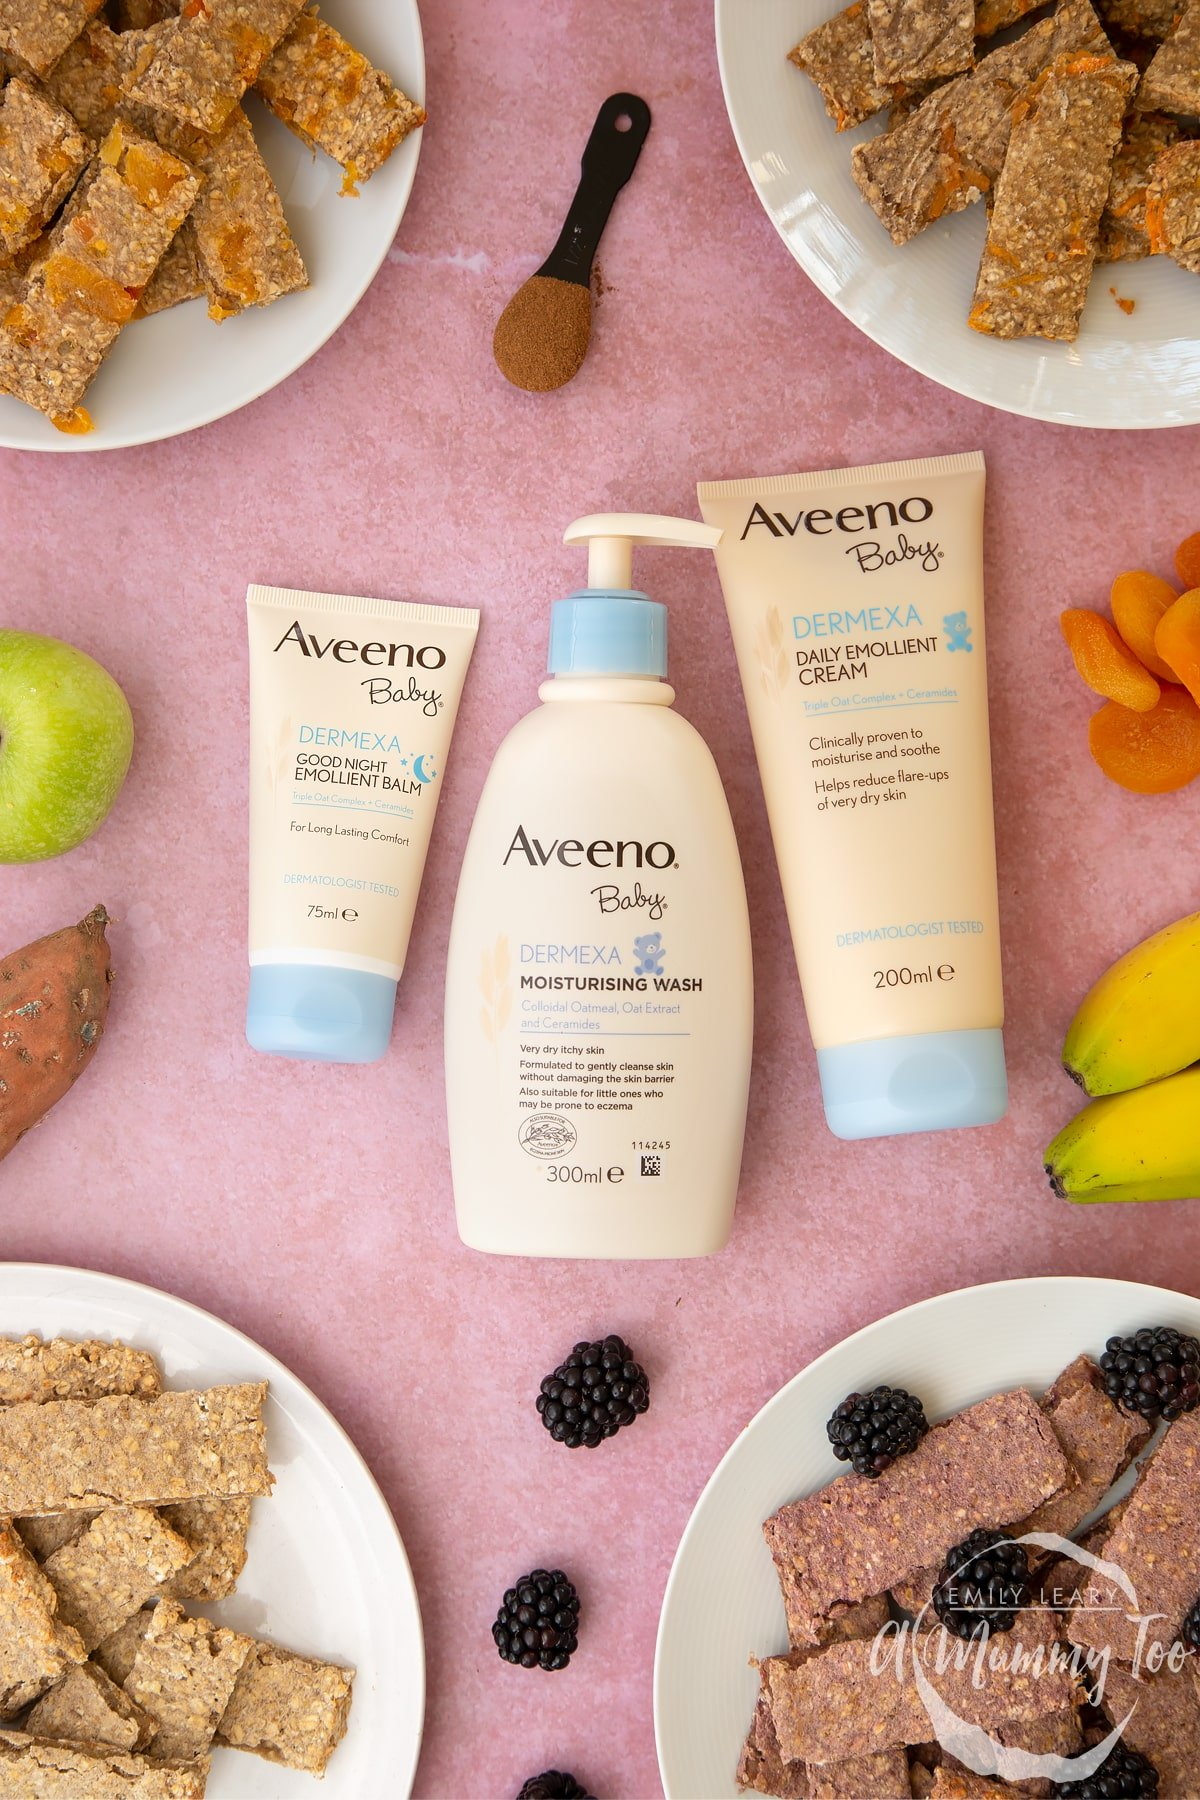 AVEENO Baby skincare products laying on a pink surface. Various flavours of oat fingers sit on plates around the edge of the frame.